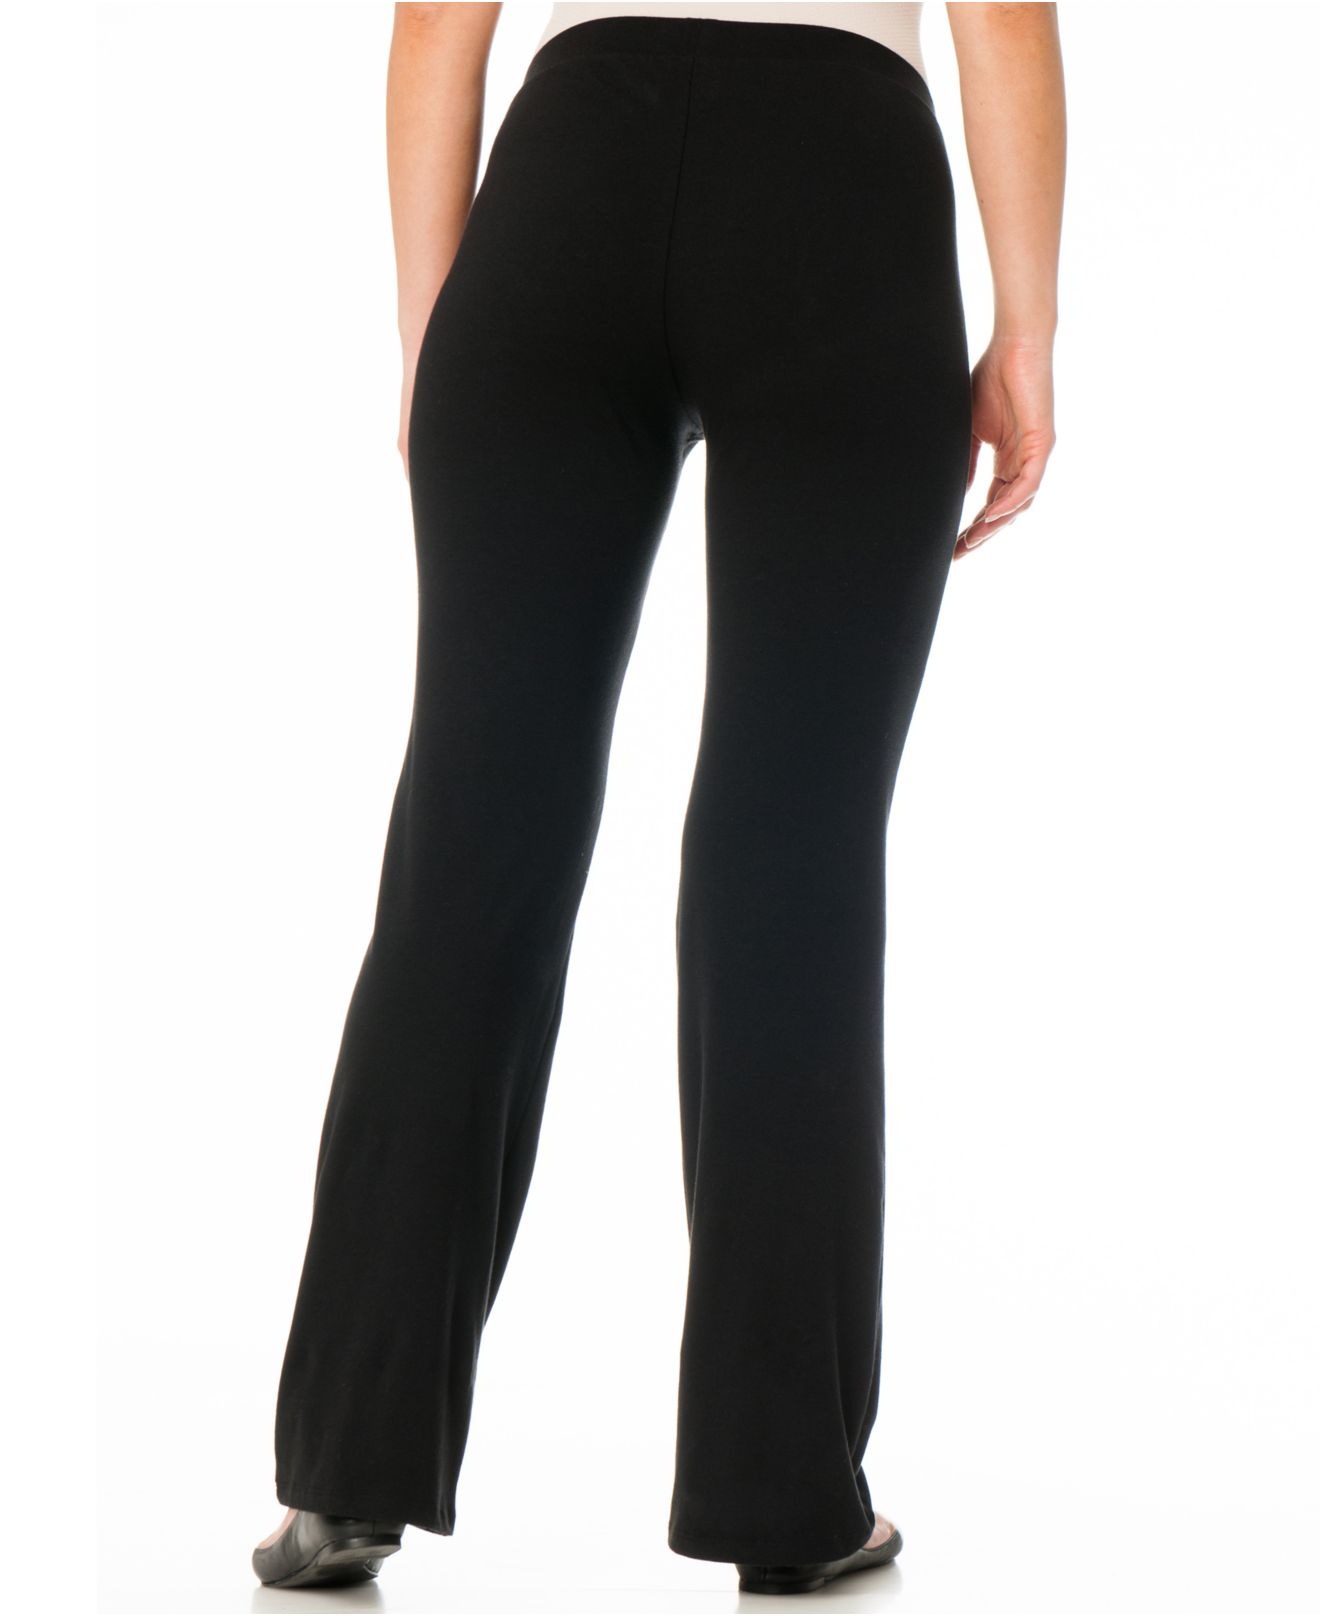 Bumpstart Two-pack Bootcut Maternity Yoga Pants in Black | Lyst